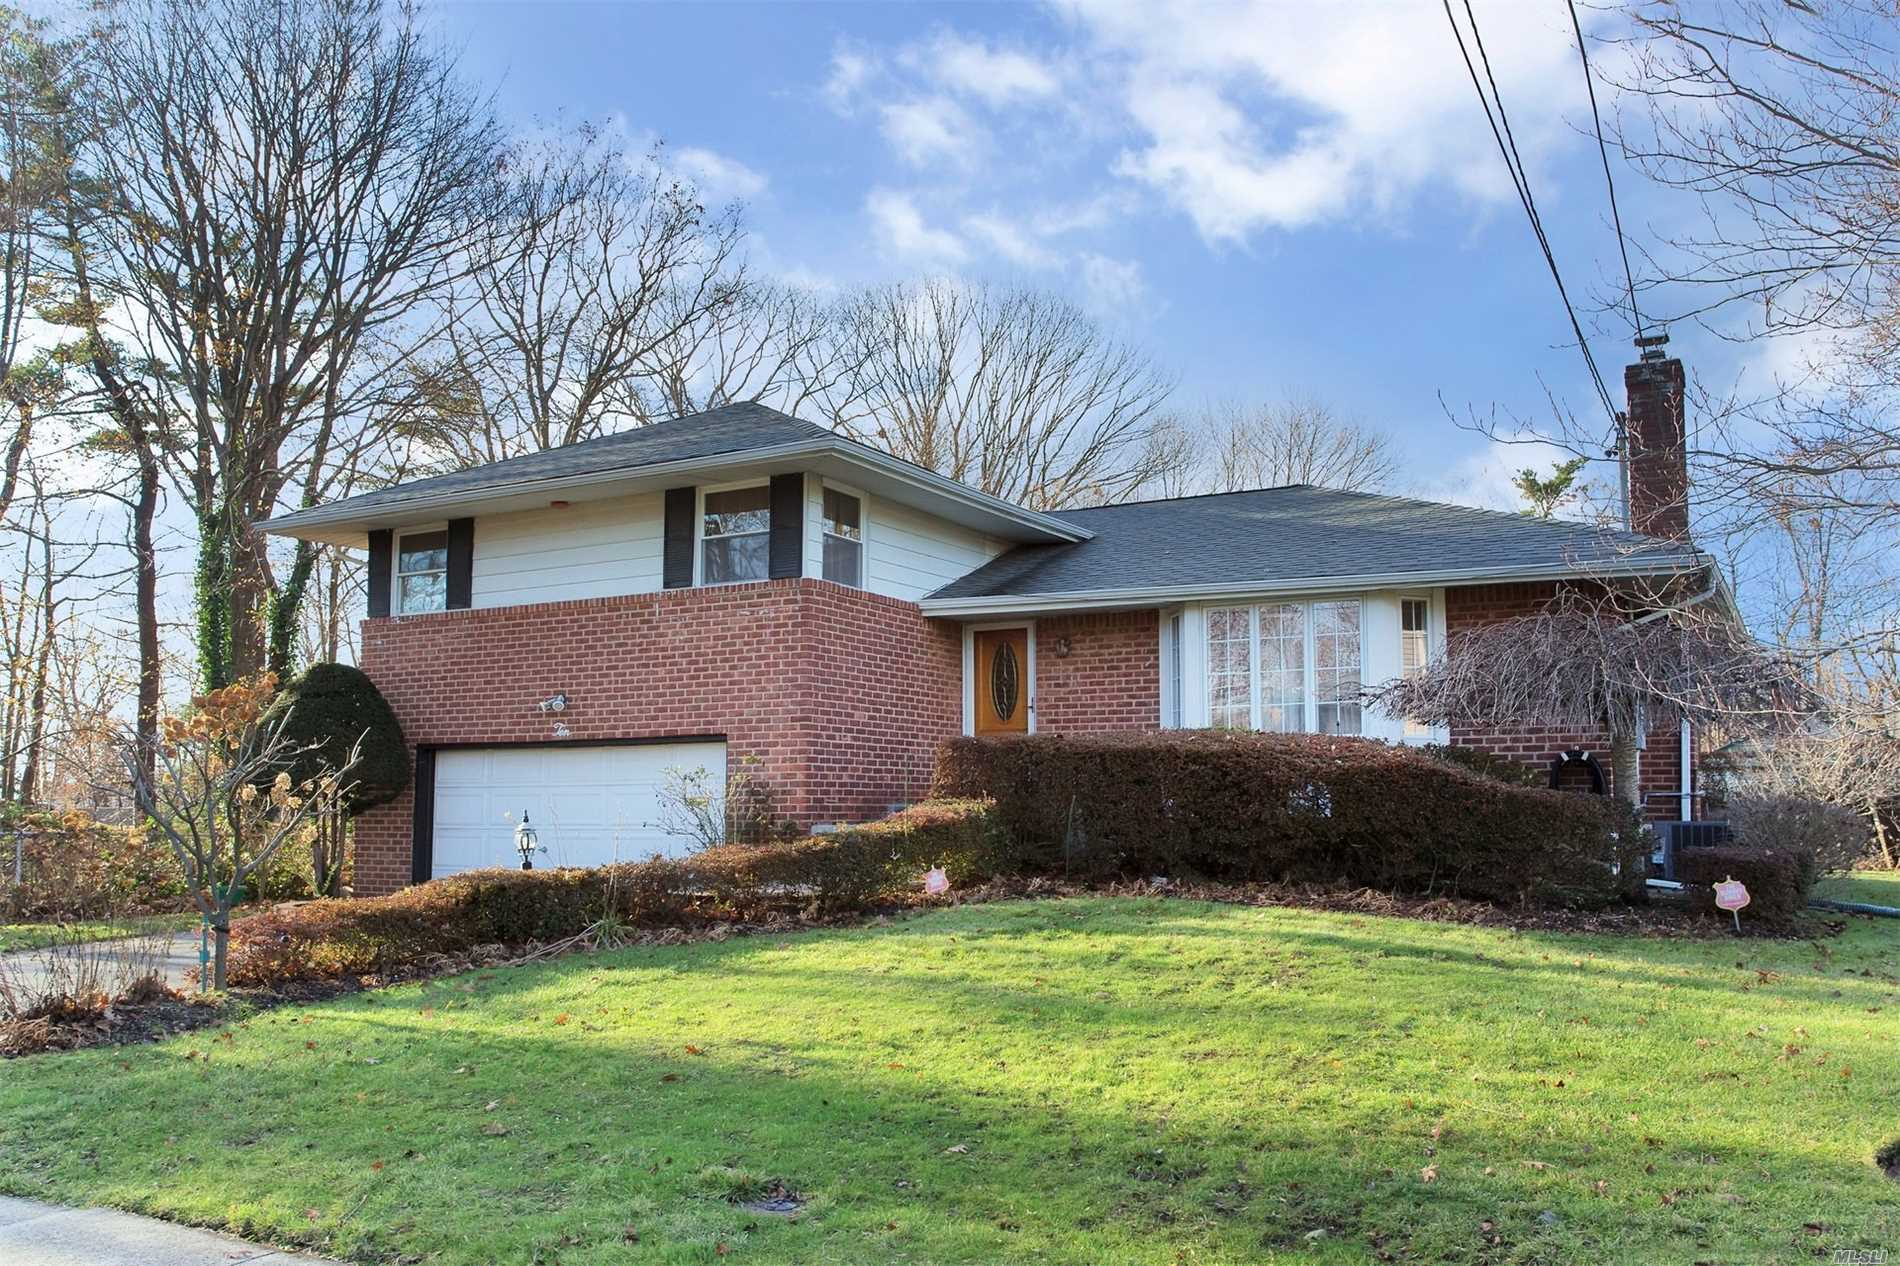 Mint 3 Bedrooms, 2.5 Bathroom Split, 2 Car Garage, Hardwood Floors, Kitchen Upgraded Under 5 Years, Granite Counter Top, New Cabinets, Include Swivel Storage, Recess Lighting, Dual Connection Stove, Cac, Sprinkler System, Cedar Closet, Bar, Great Backyard For The Family.